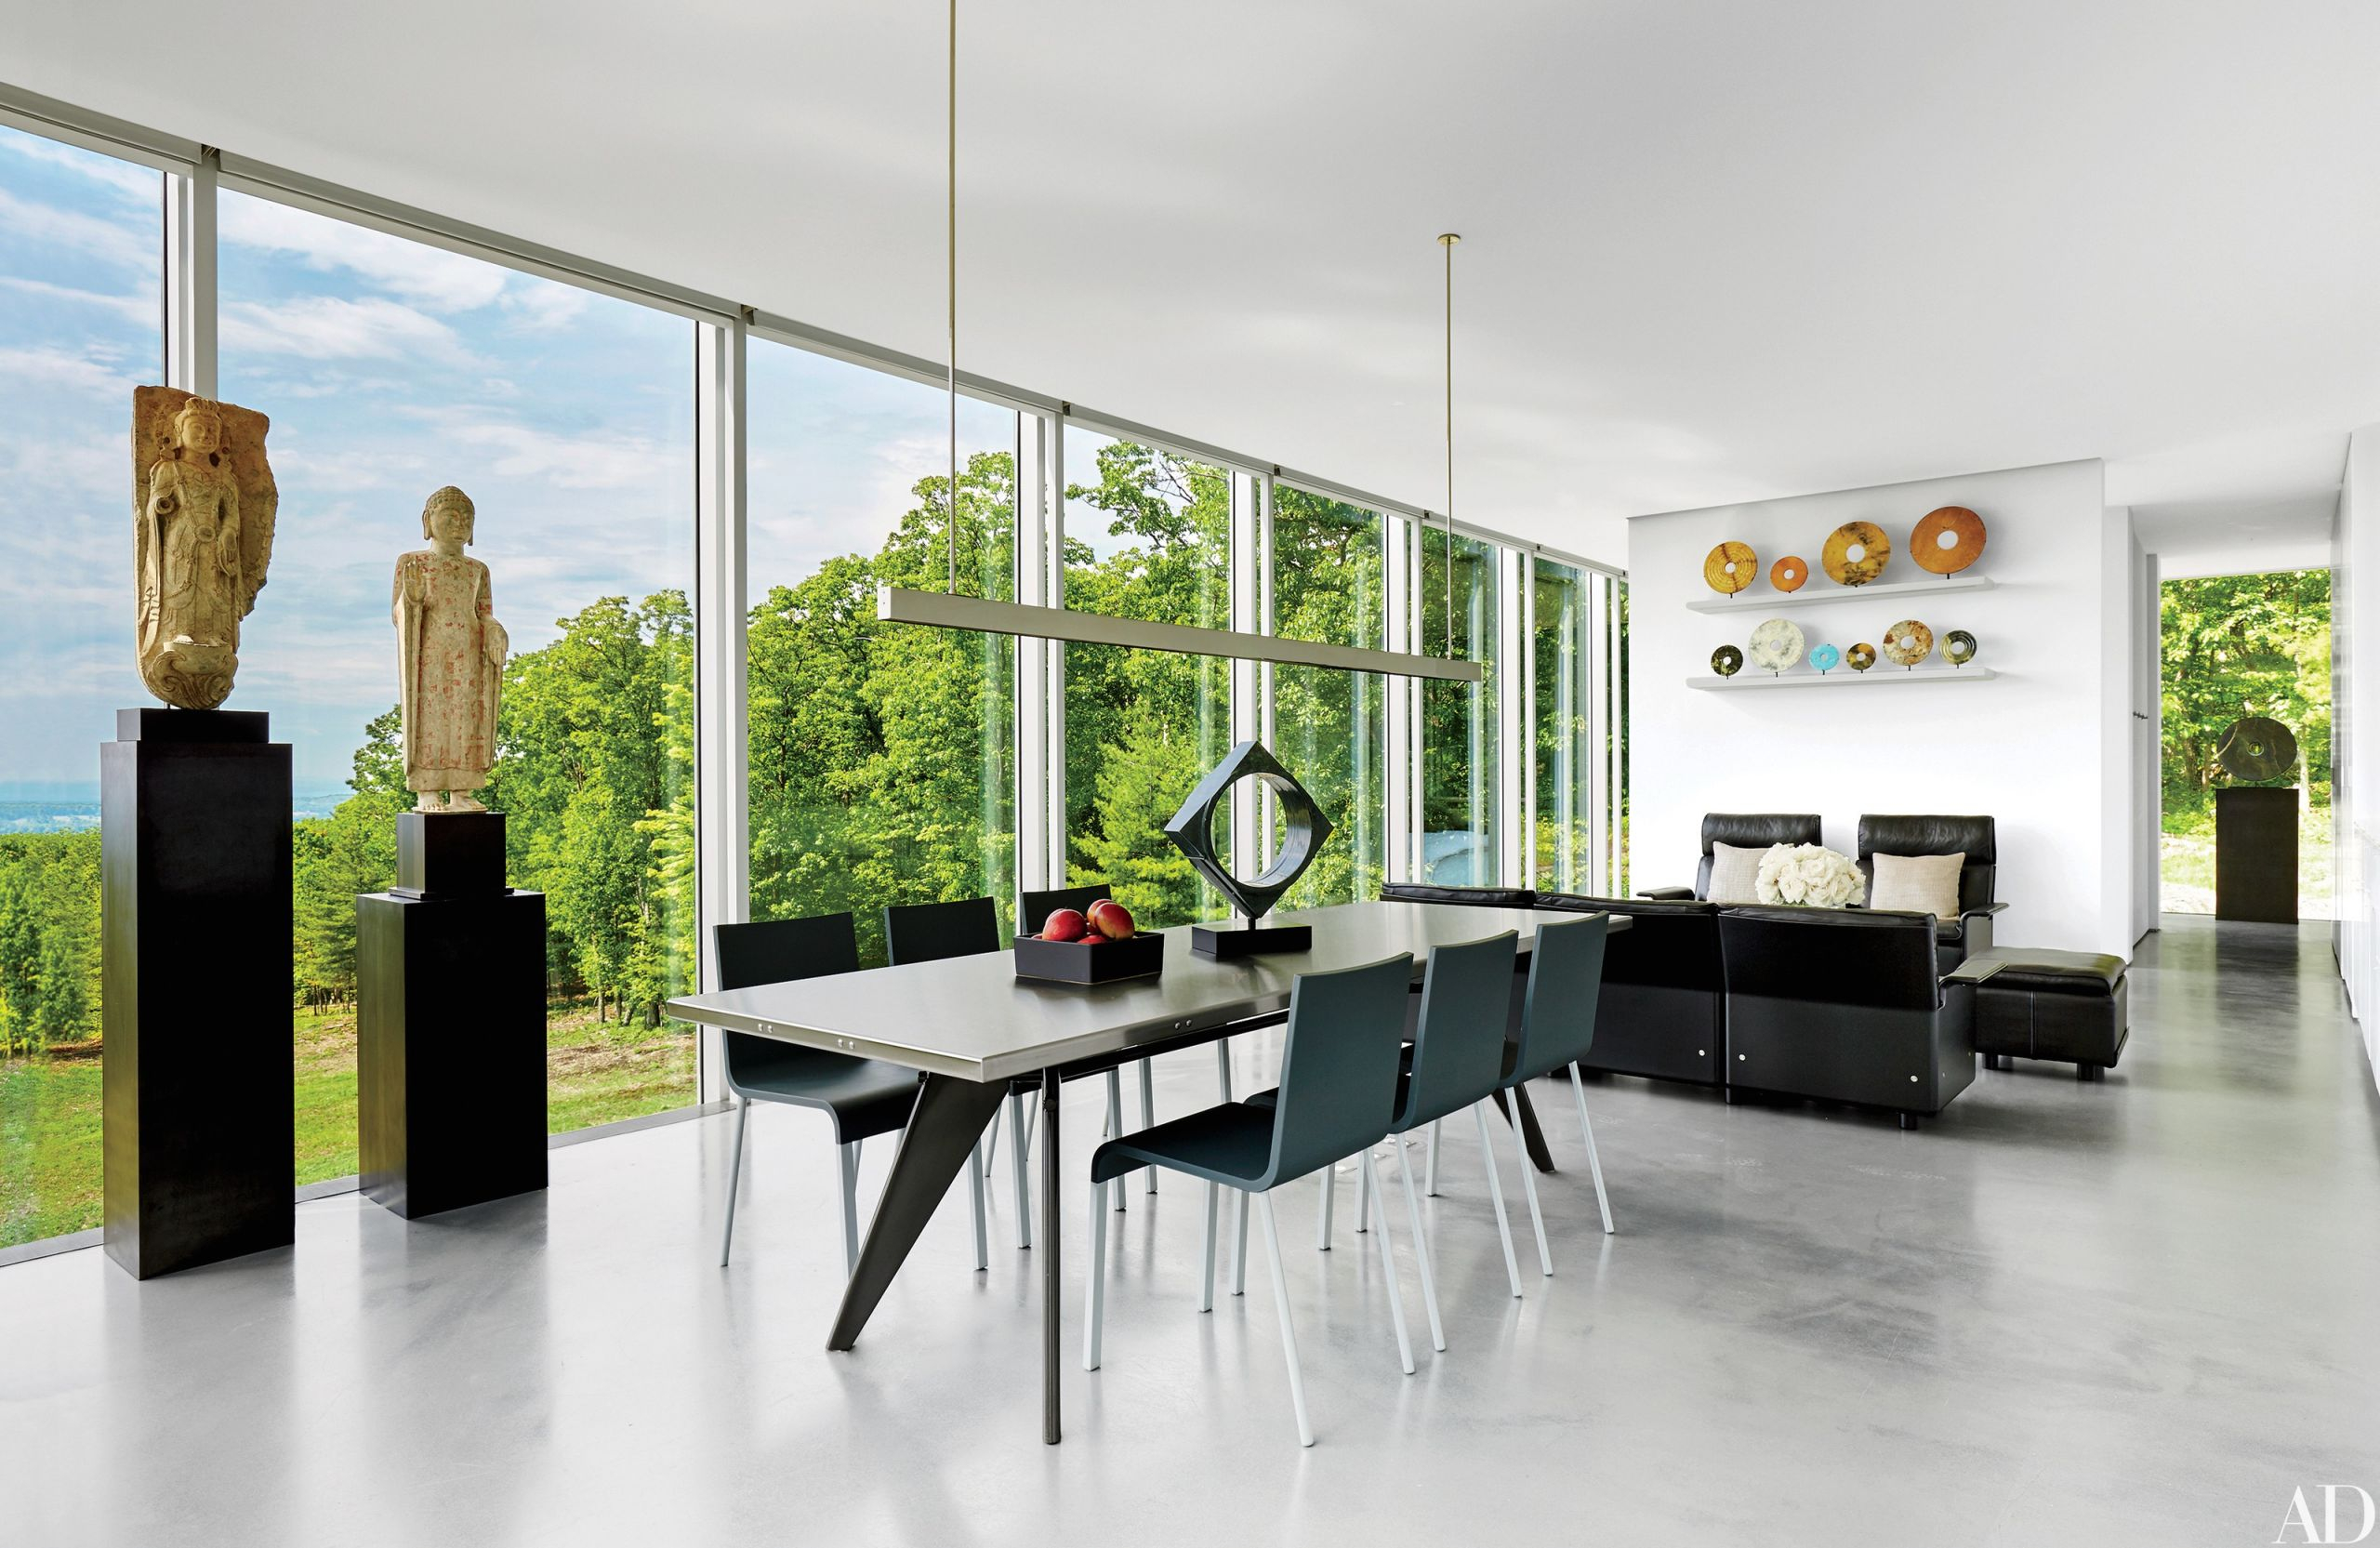 Contemporary Interior Design: 13 Striking And Sleek Rooms in Beautiful Contemporary Interior Design Ideas